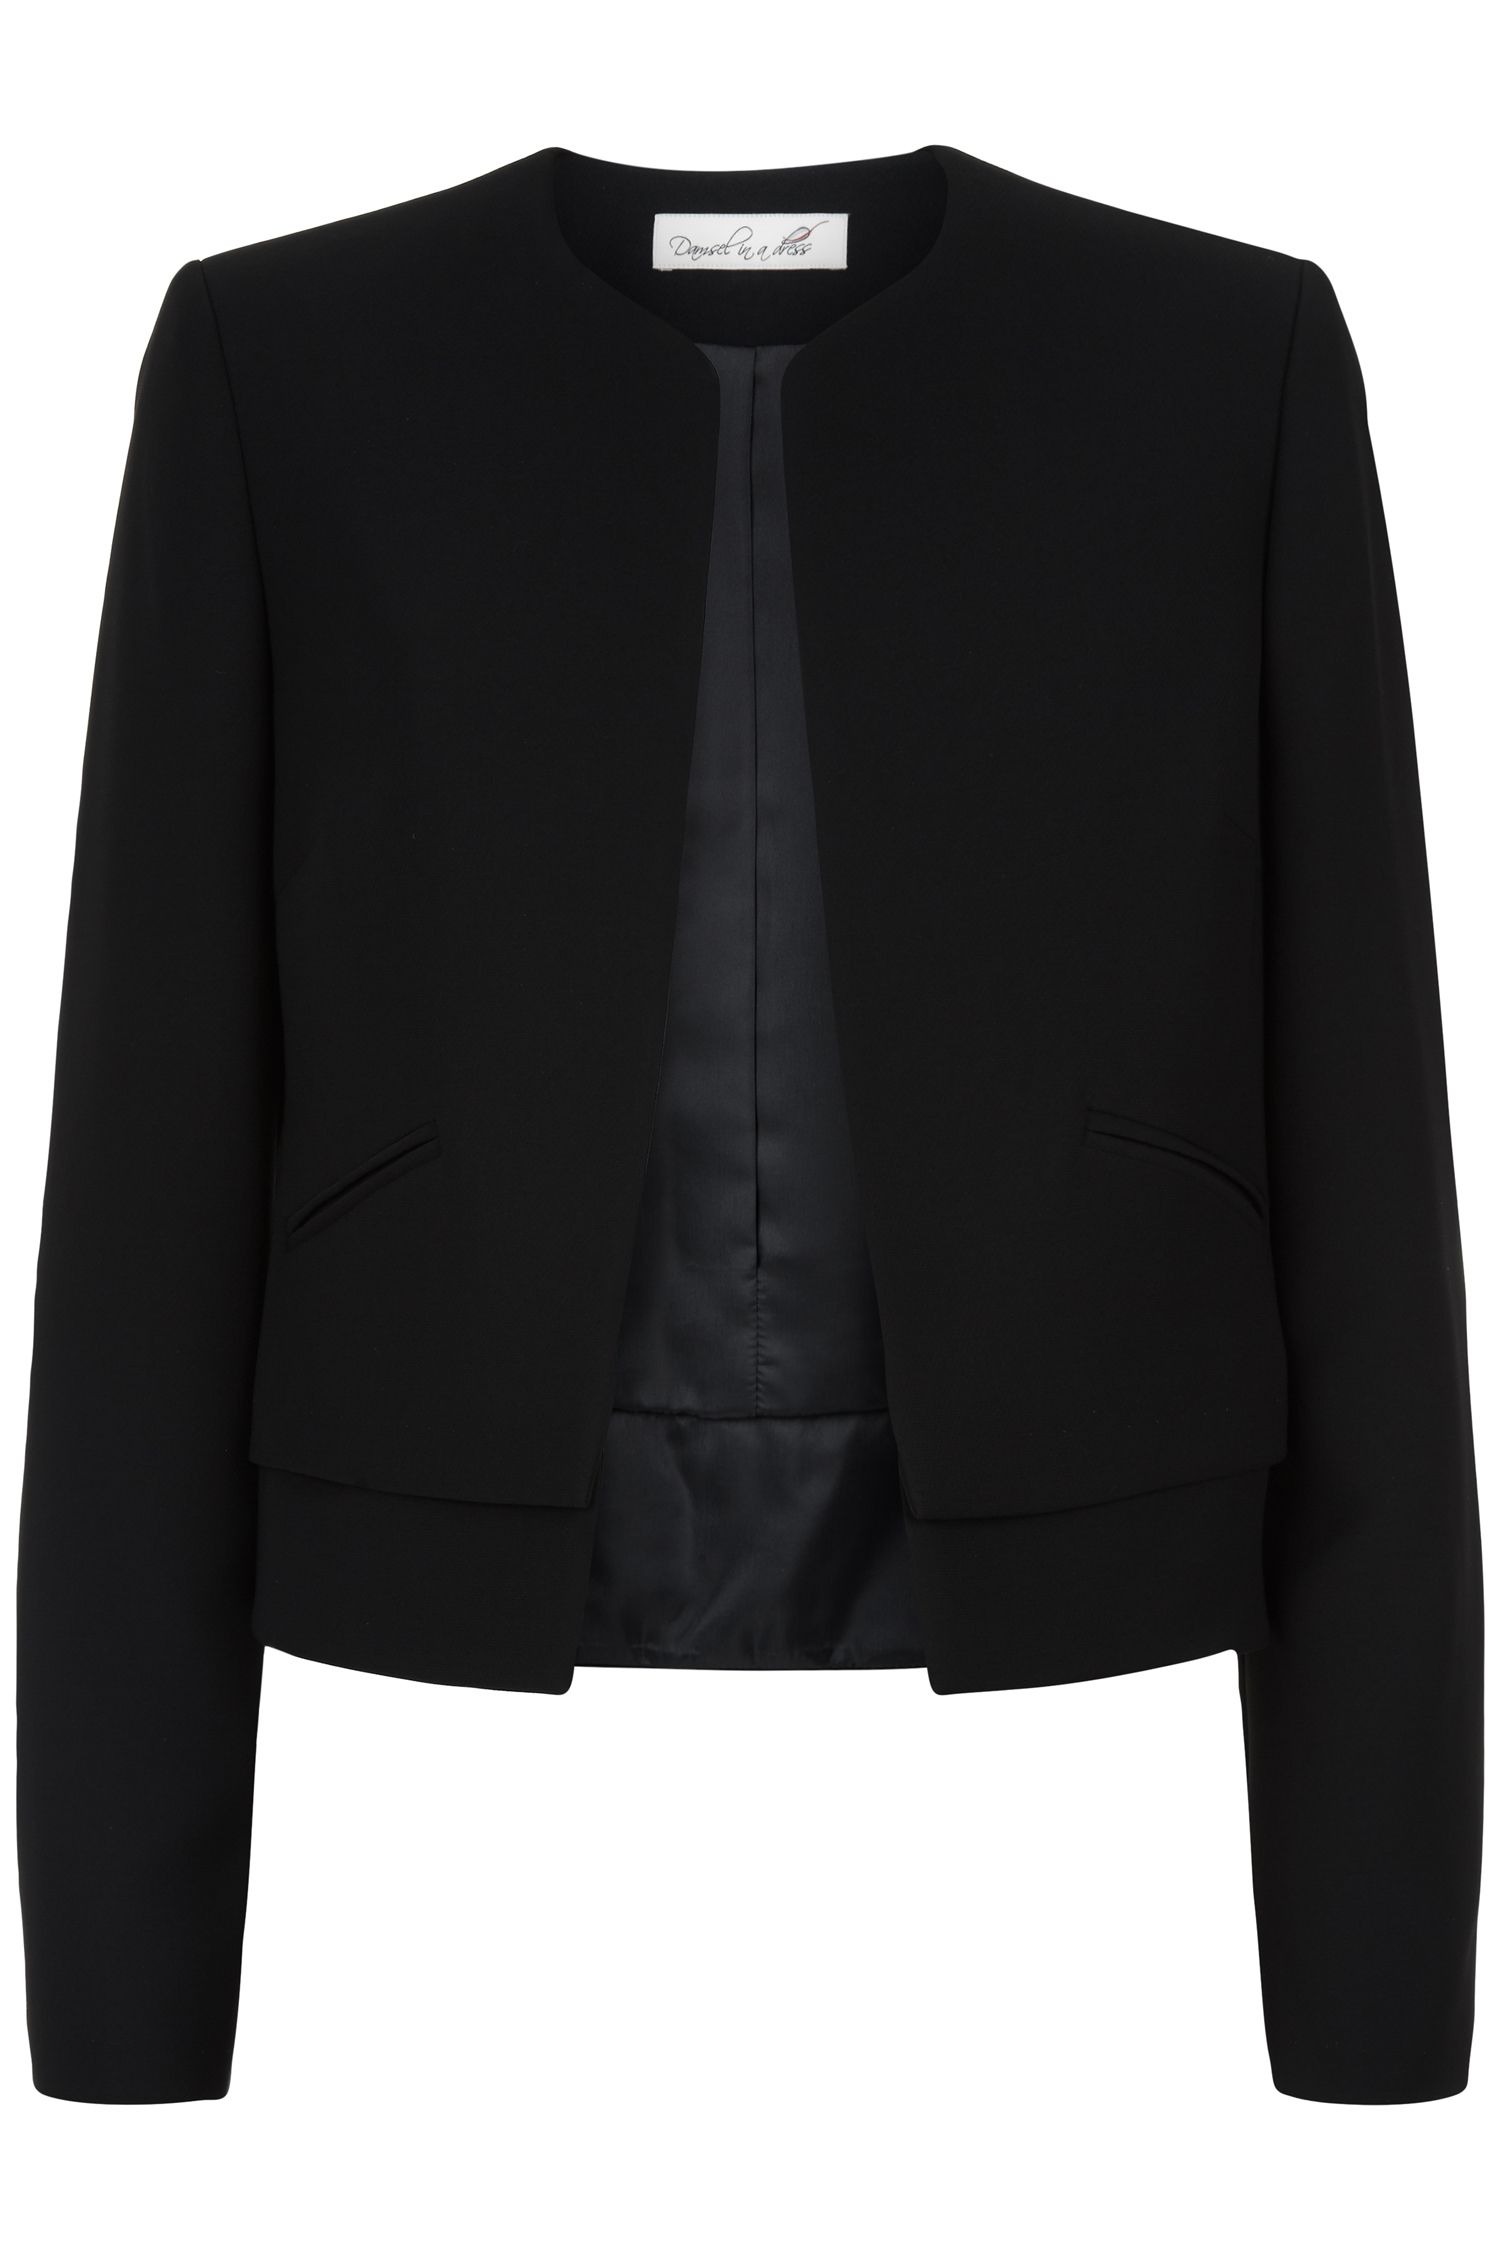 Damsel in a Dress Spotlight Short Jacket, Black